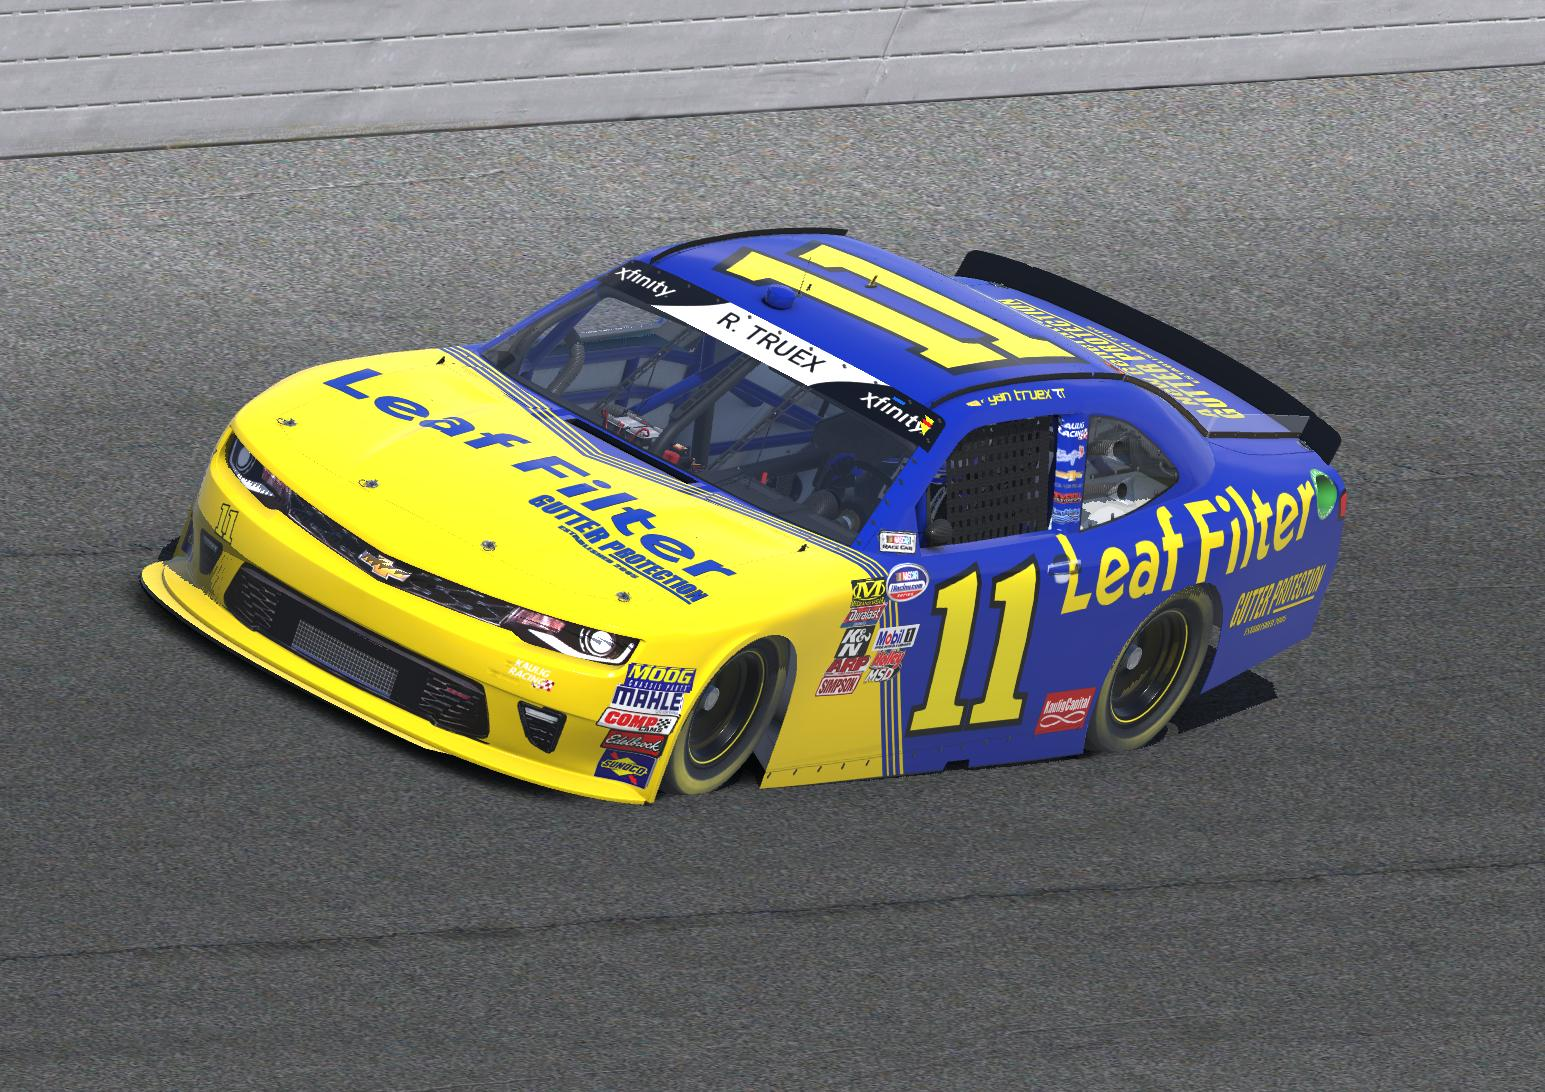 Preview of Ryan Truex Darlington Throwback by Justin M. Williams